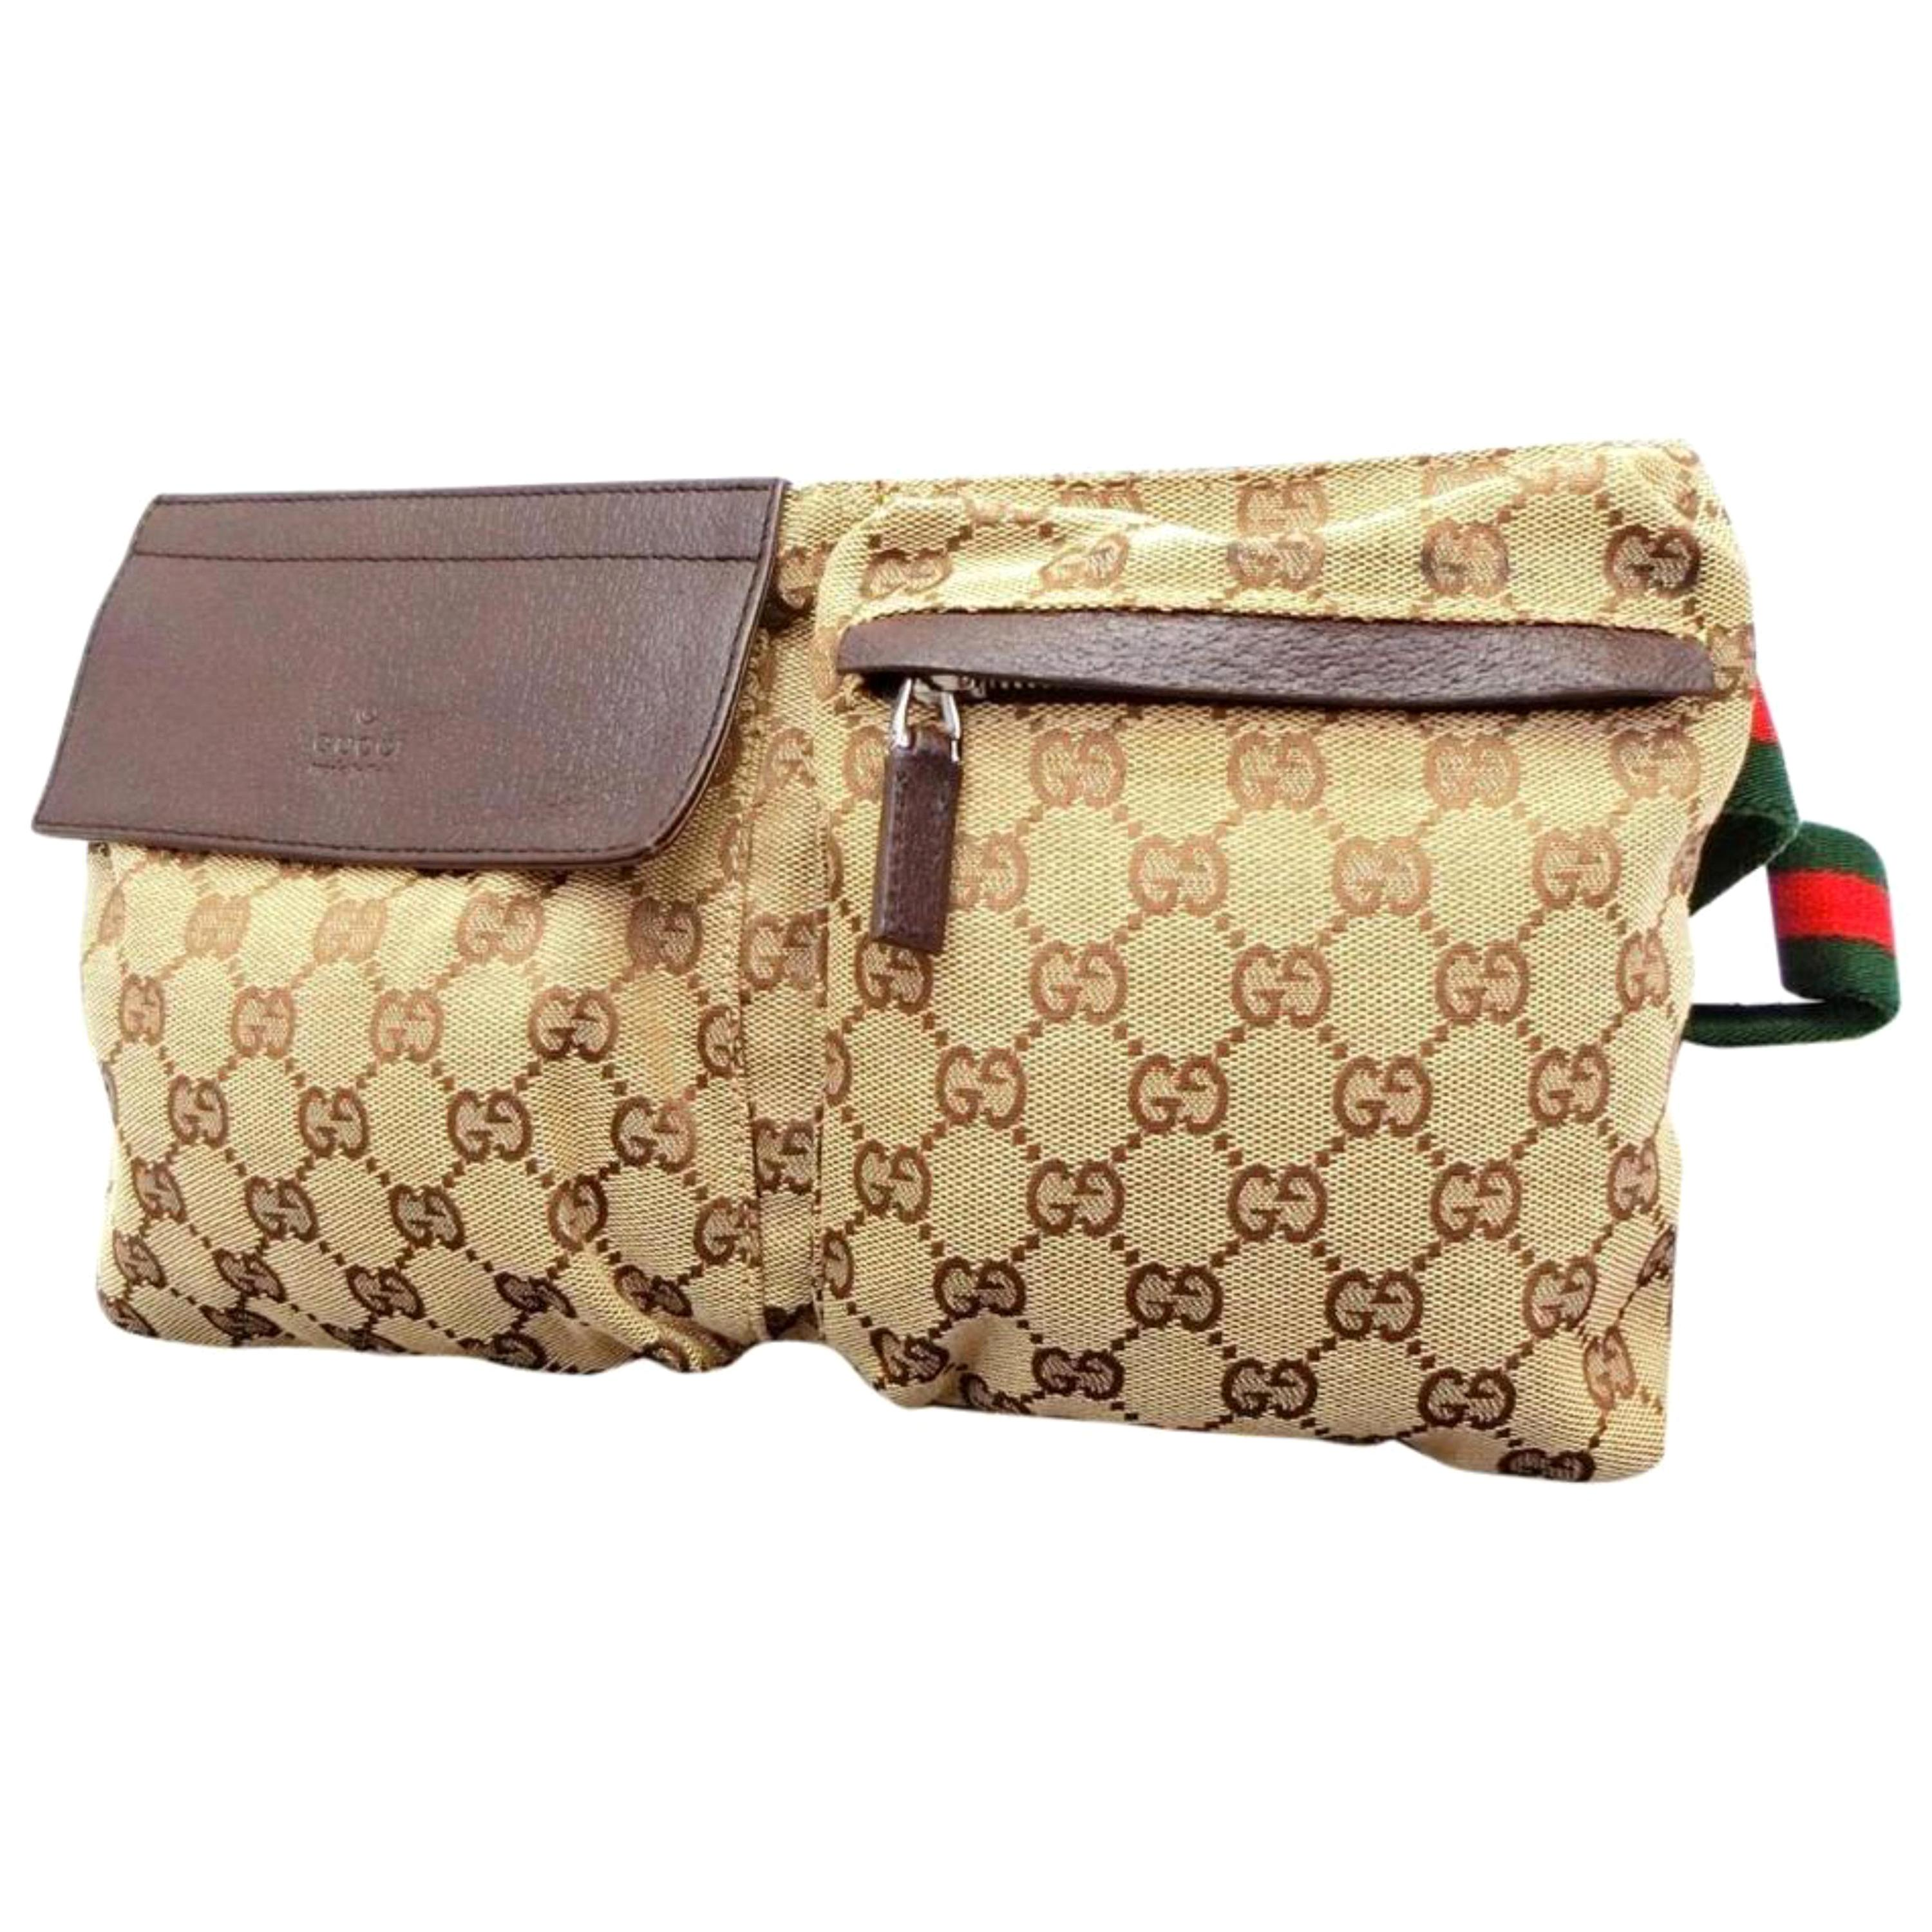 63b621471d0e Vintage Gucci: Clothing, Bags & More - 4,097 For Sale at 1stdibs - Page 3